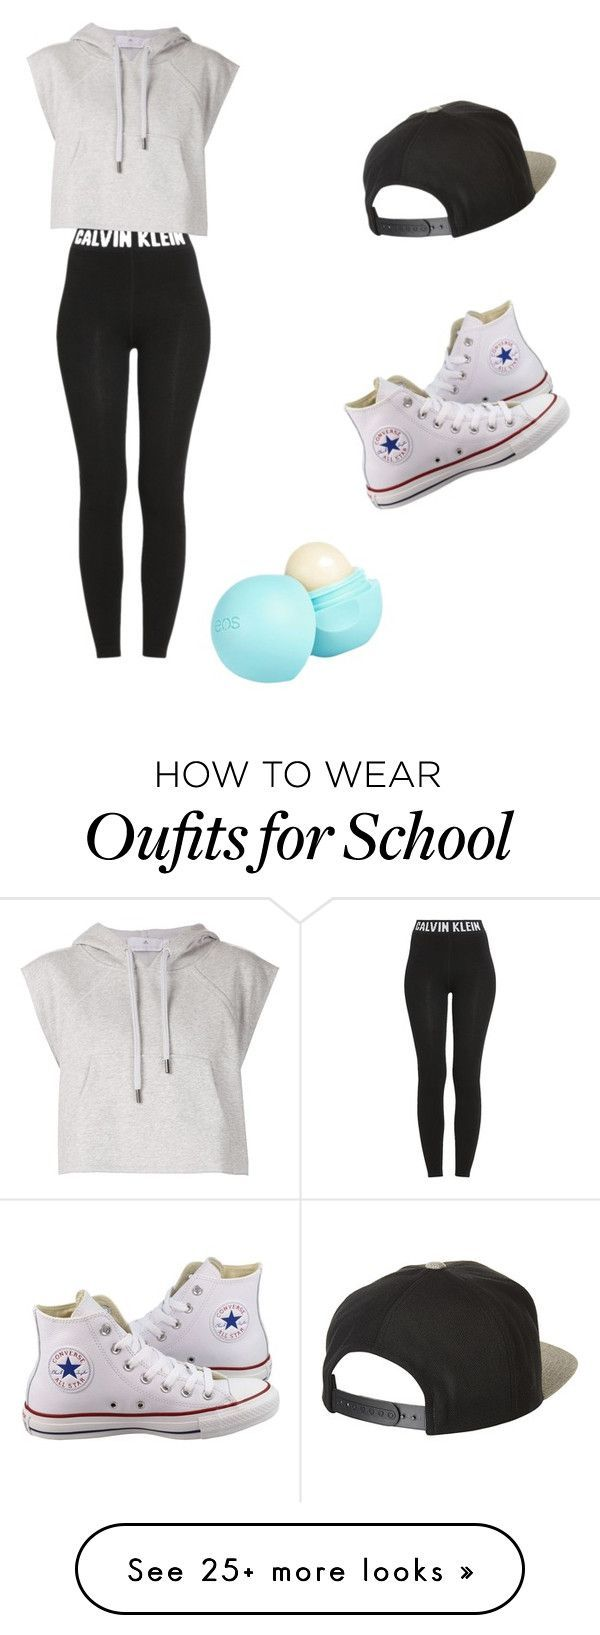 """going to school"" by arionnaparto on Polyvore featuring Calvin Klein, adidas, Converse, Brixton and River Island"